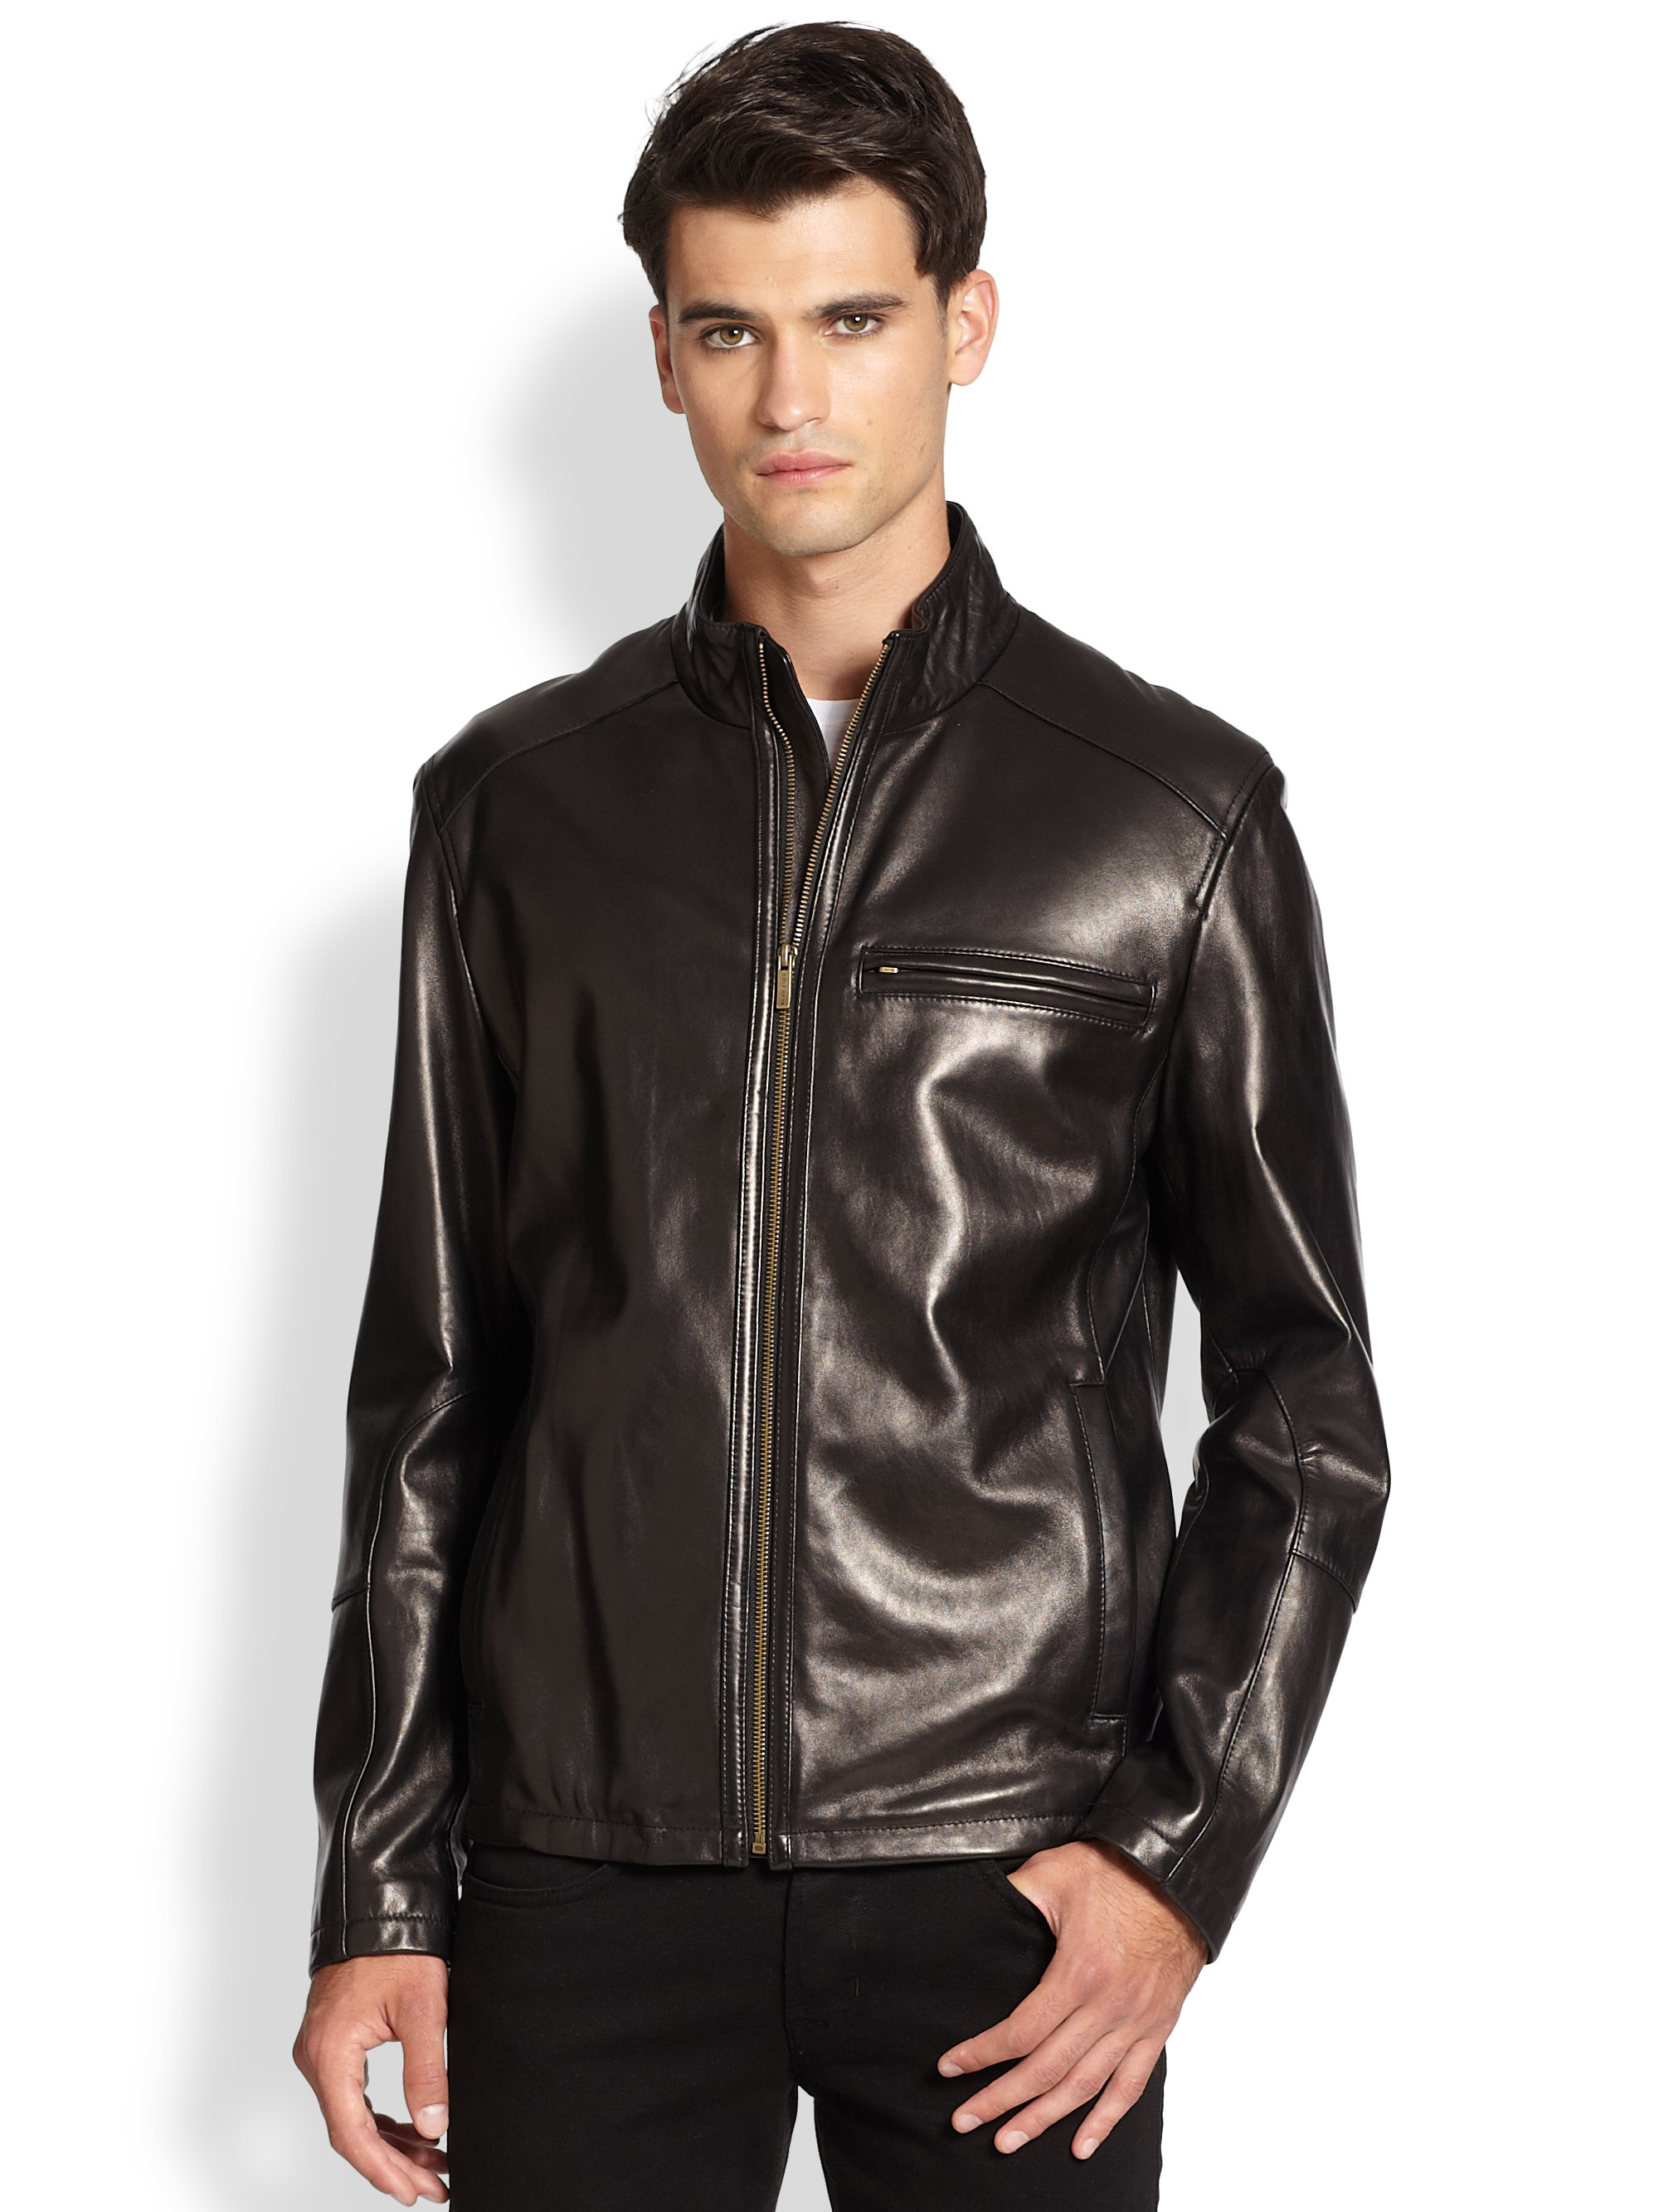 Cole haan Smooth Leather Moto Jacket in Black for Men - Save 1% | Lyst